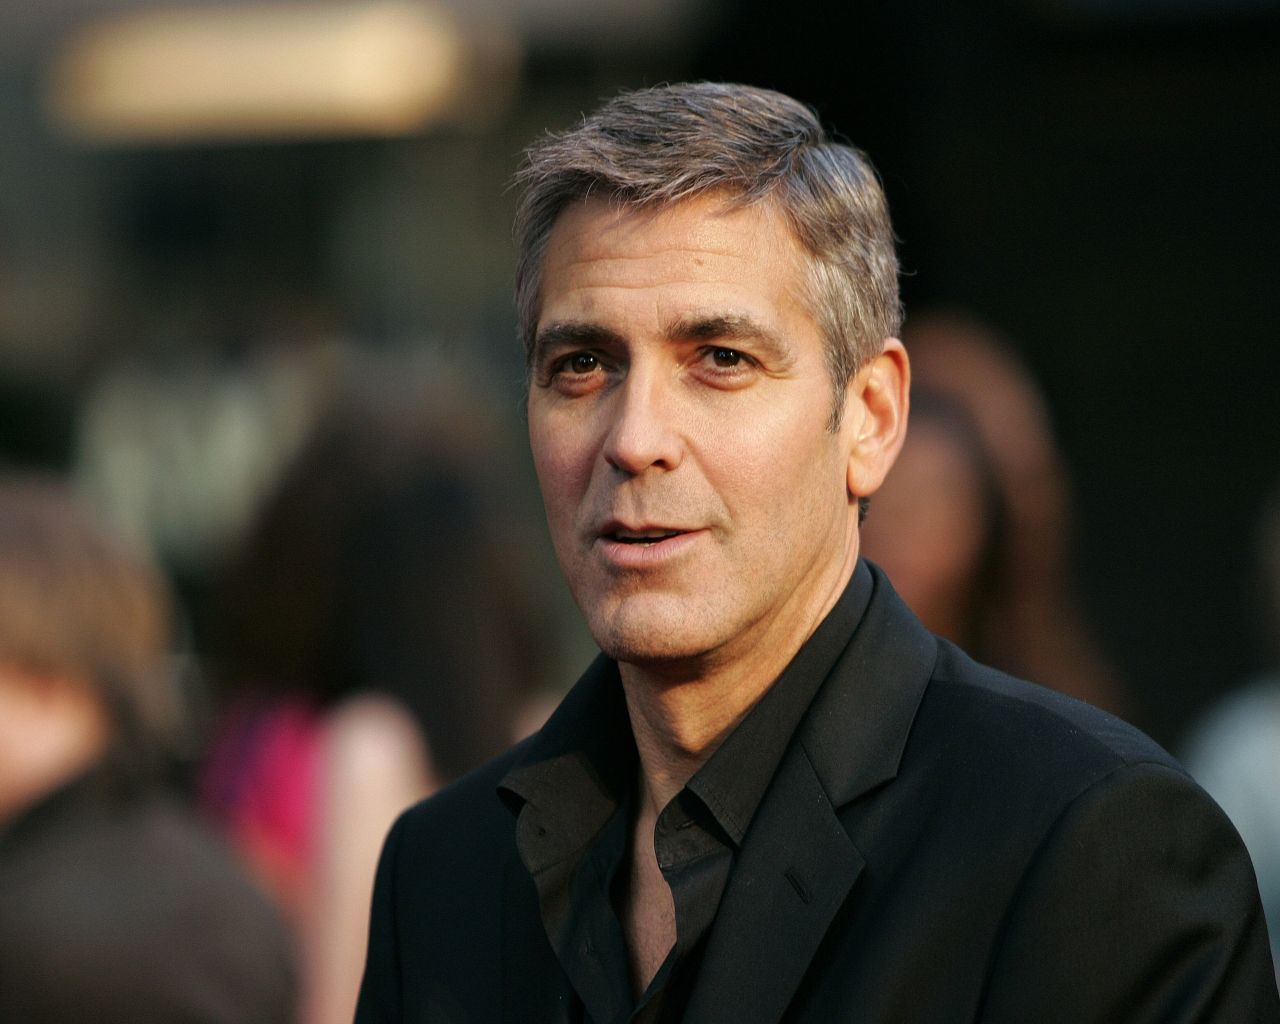 george clooney article